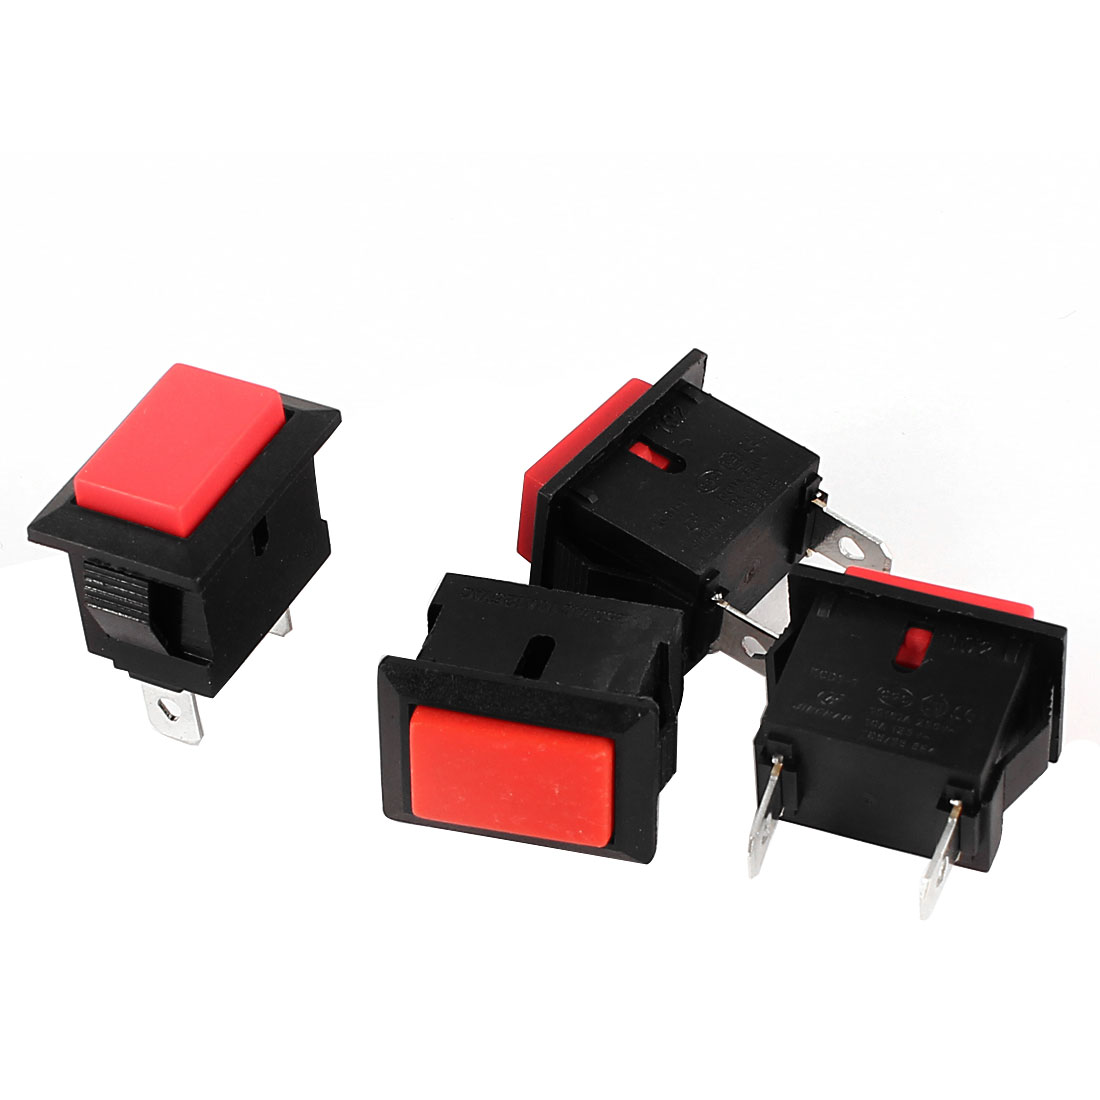 4 Pcs Panel Mount SPST Non-locking Red Push Button Switch AC 250V 6A 125V 10A